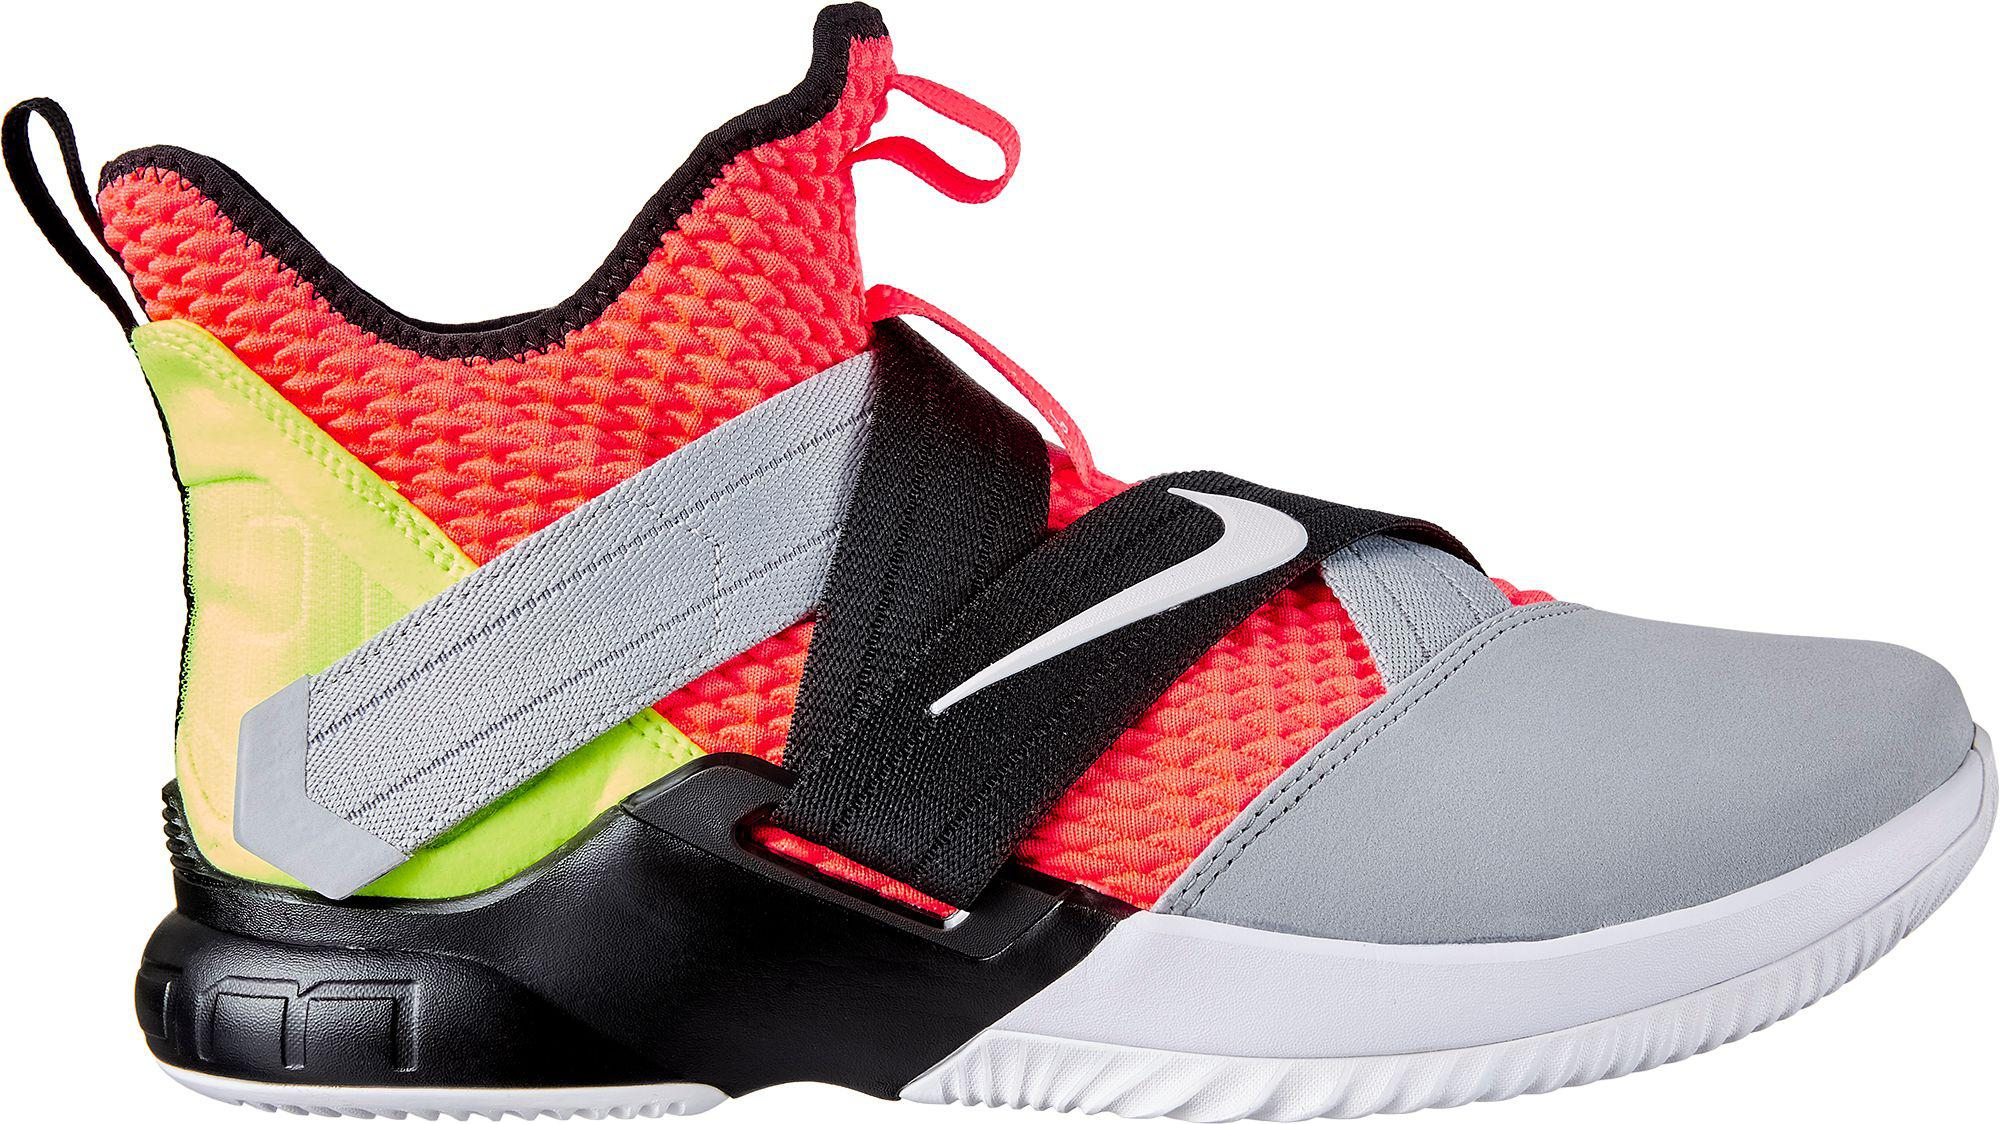 74e06d1059c3 Nike - Multicolor Zoom Lebron Soldier Xii Sfg Basketball Shoes for Men -  Lyst